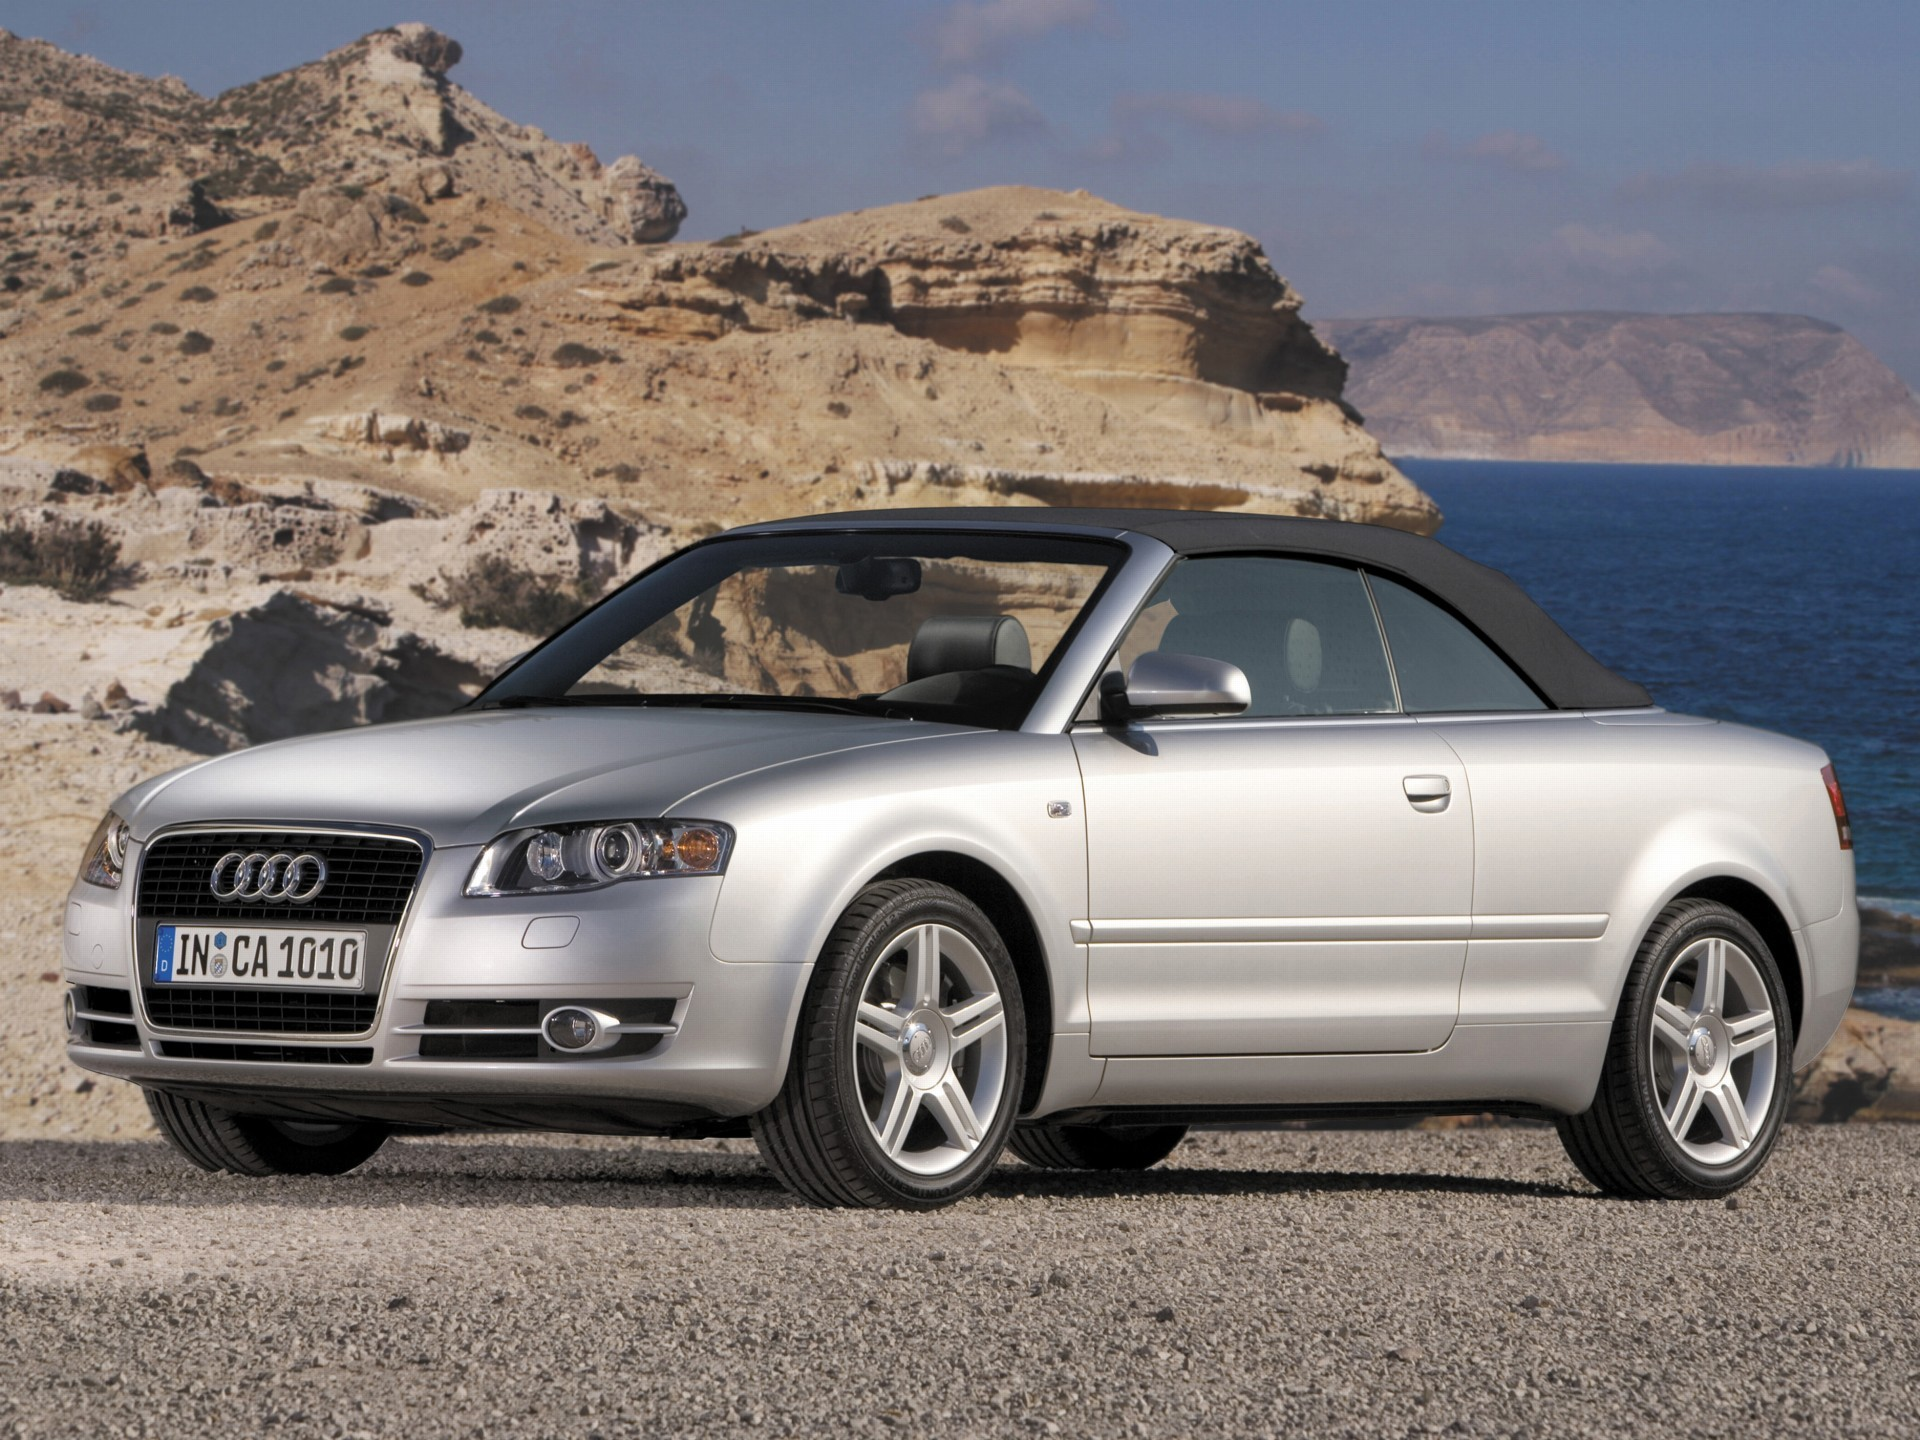 audi a4 1.8 t convertible review